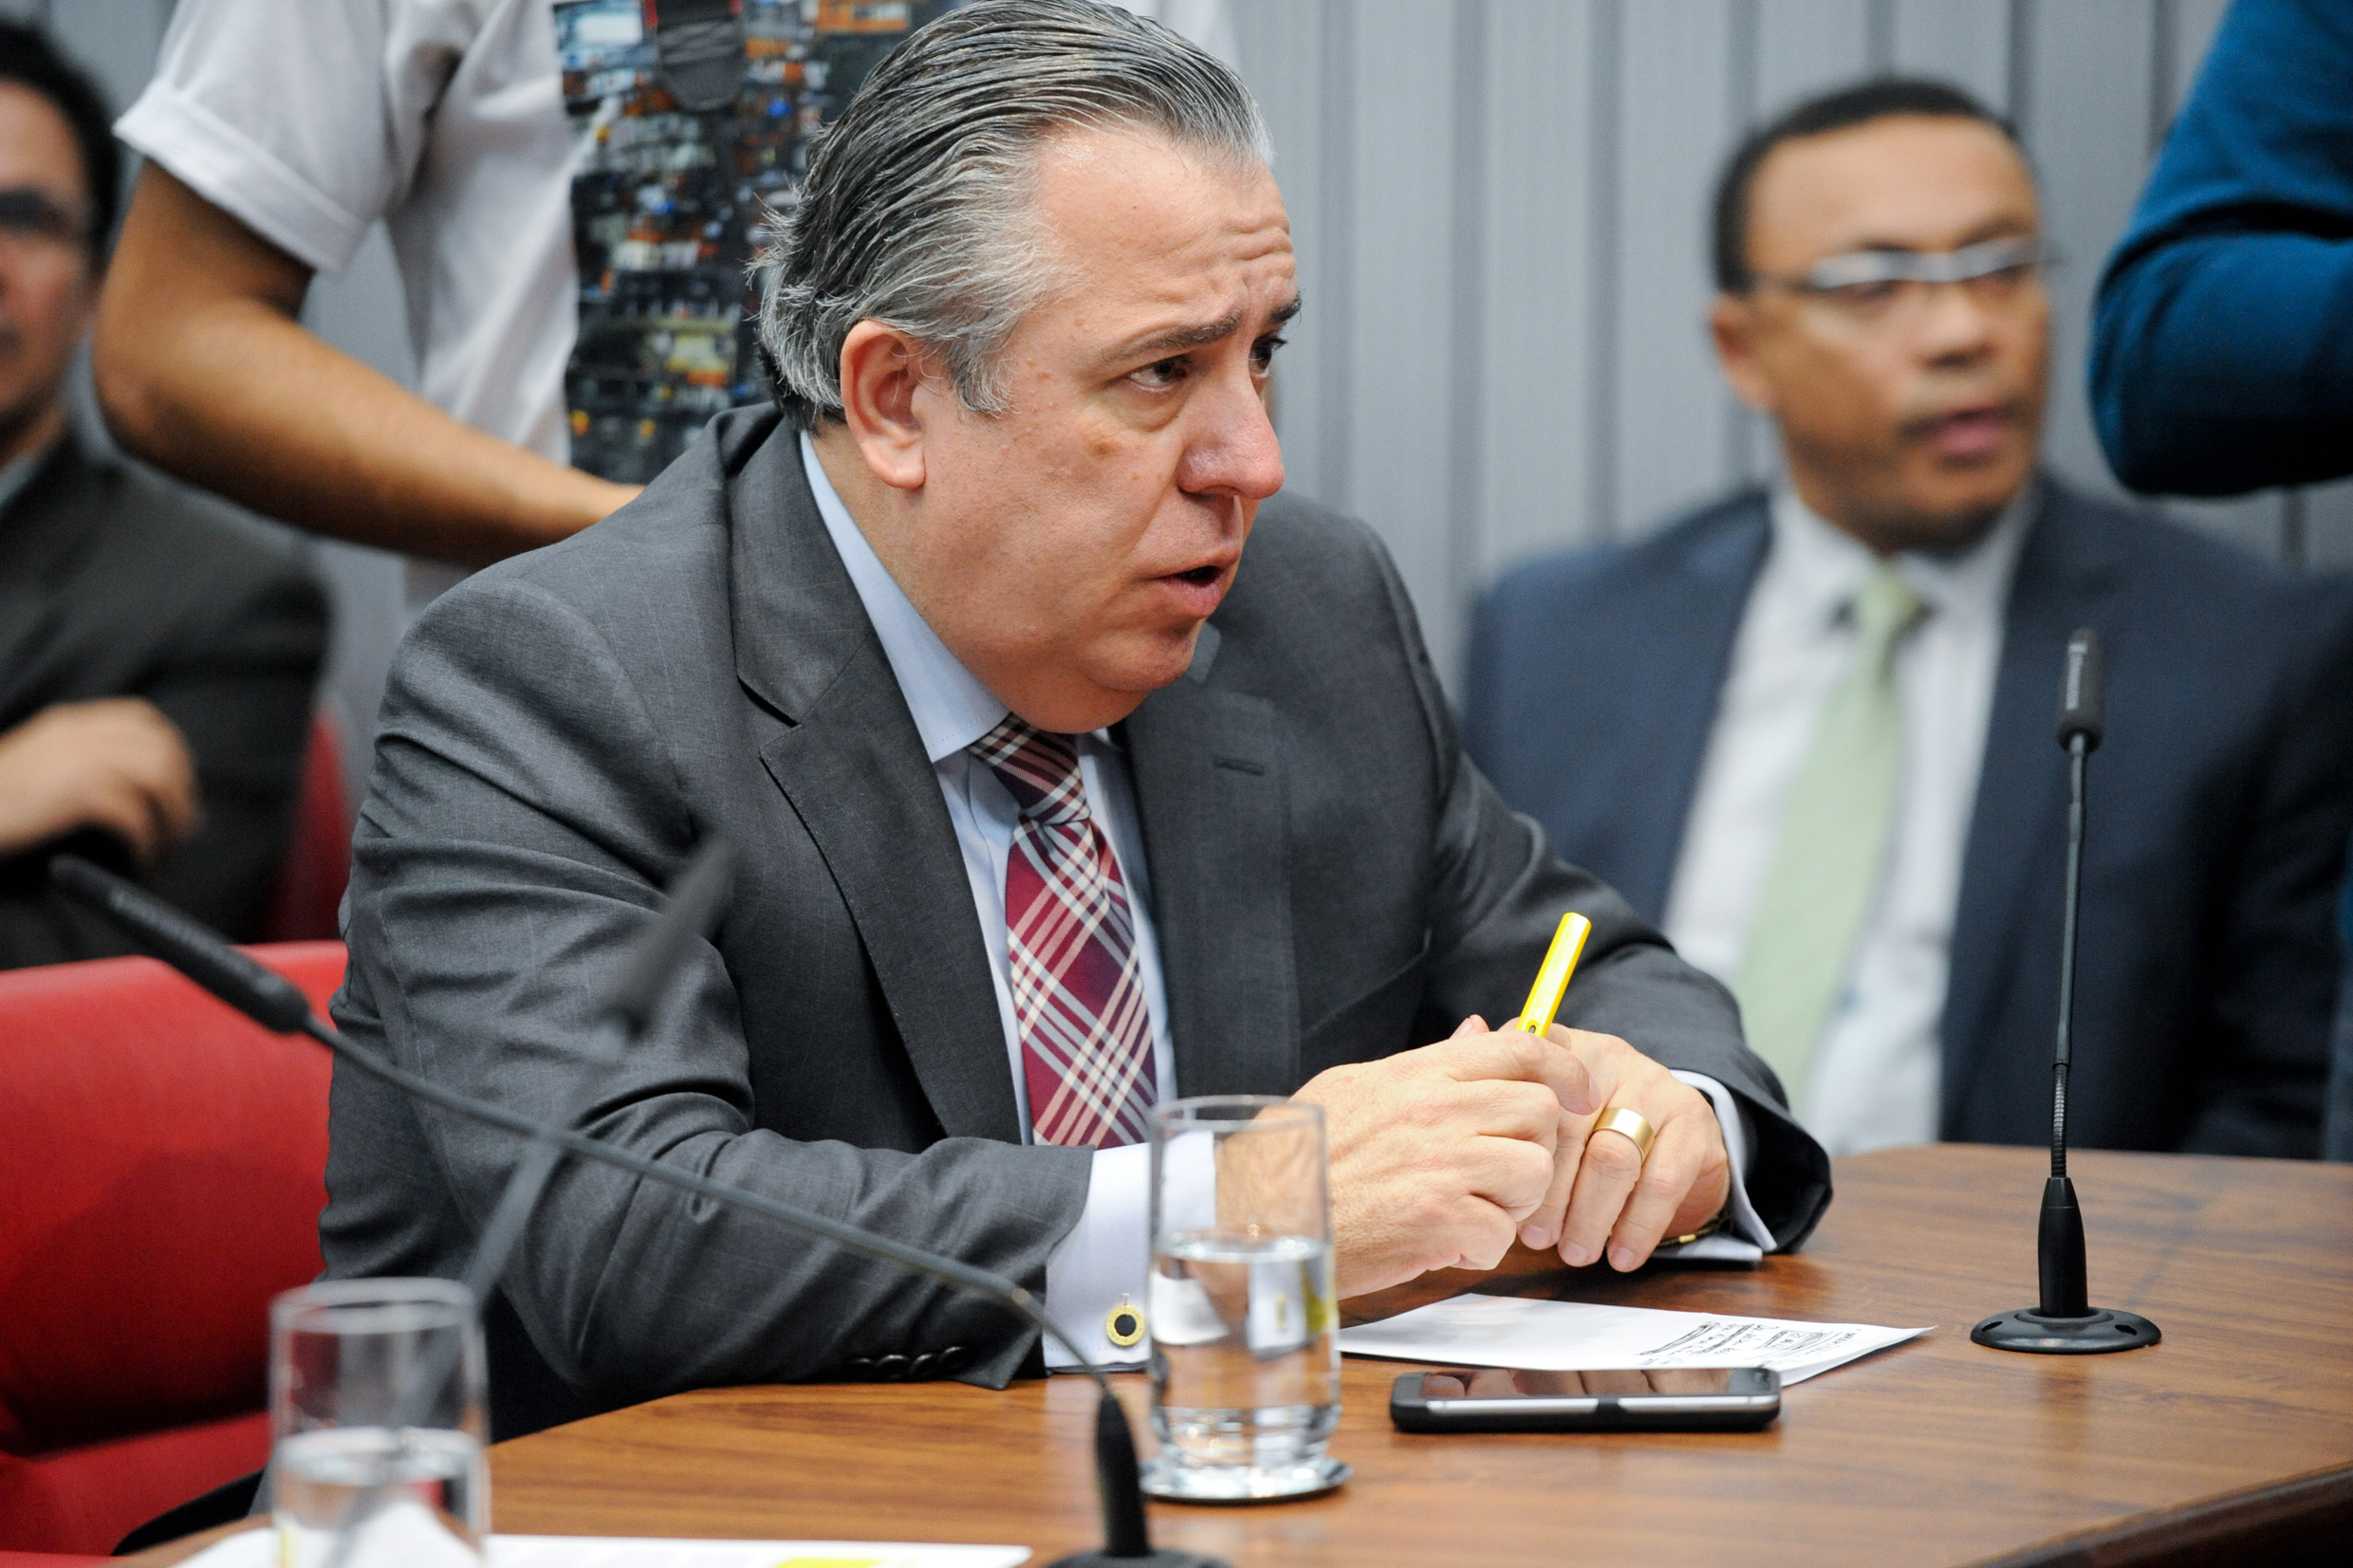 Adilson Rossi <a style='float:right' href='https://www3.al.sp.gov.br/repositorio/noticia/N-06-2016/fg191890.jpg' target=_blank><img src='/_img/material-file-download-white.png' width='14px' alt='Clique para baixar a imagem'></a>